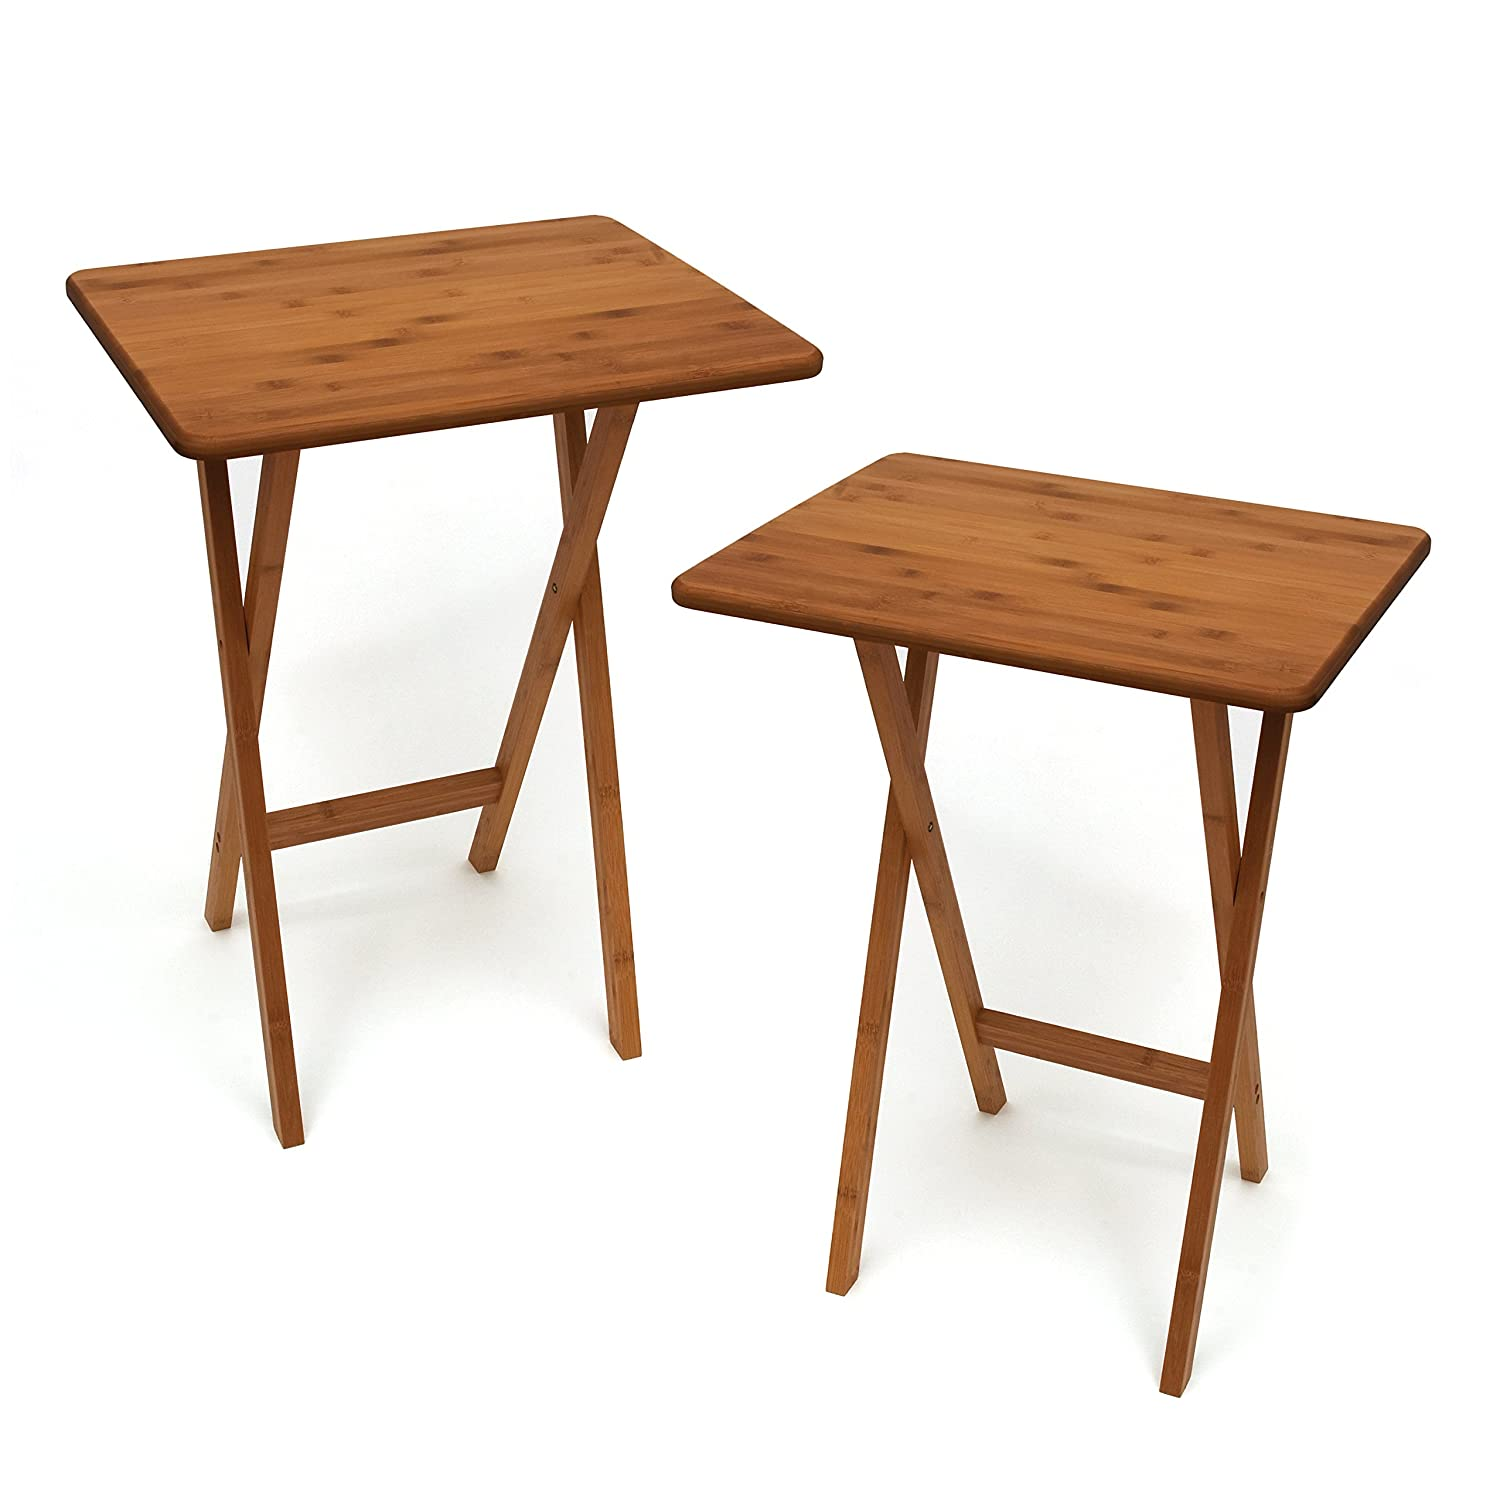 Lipper International 803-2 Bamboo Wood Rectangular Snack Tables, 18.75 x 15 x 24.75, Set of 2 Tables